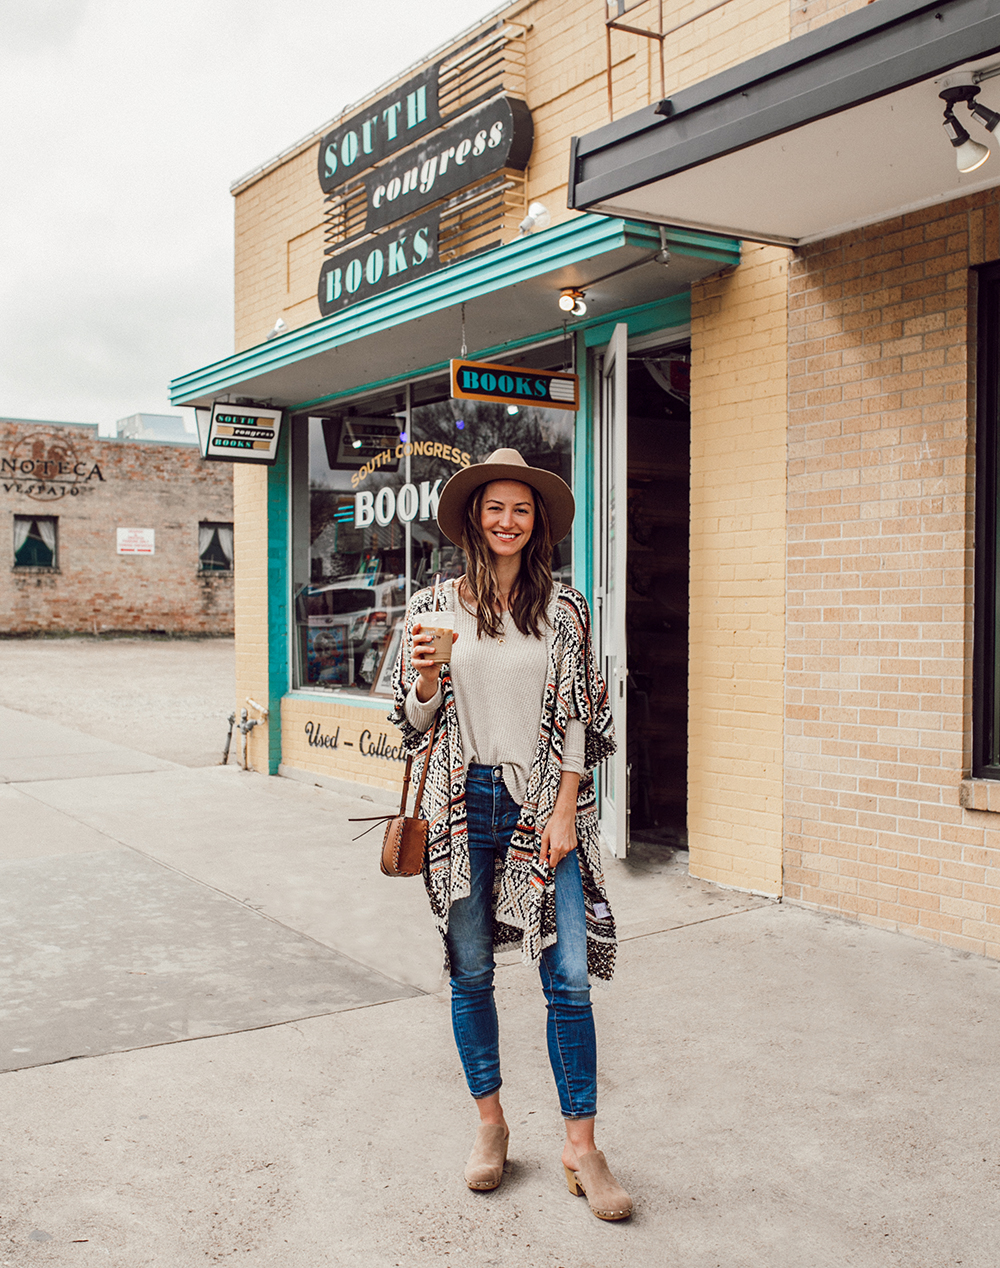 livvyland-blog-olivia-watson-austin-texas-fashion-style-blogger-south-congress-avenue-sole-society-taupe-clogs-boho-outfit-idea-11